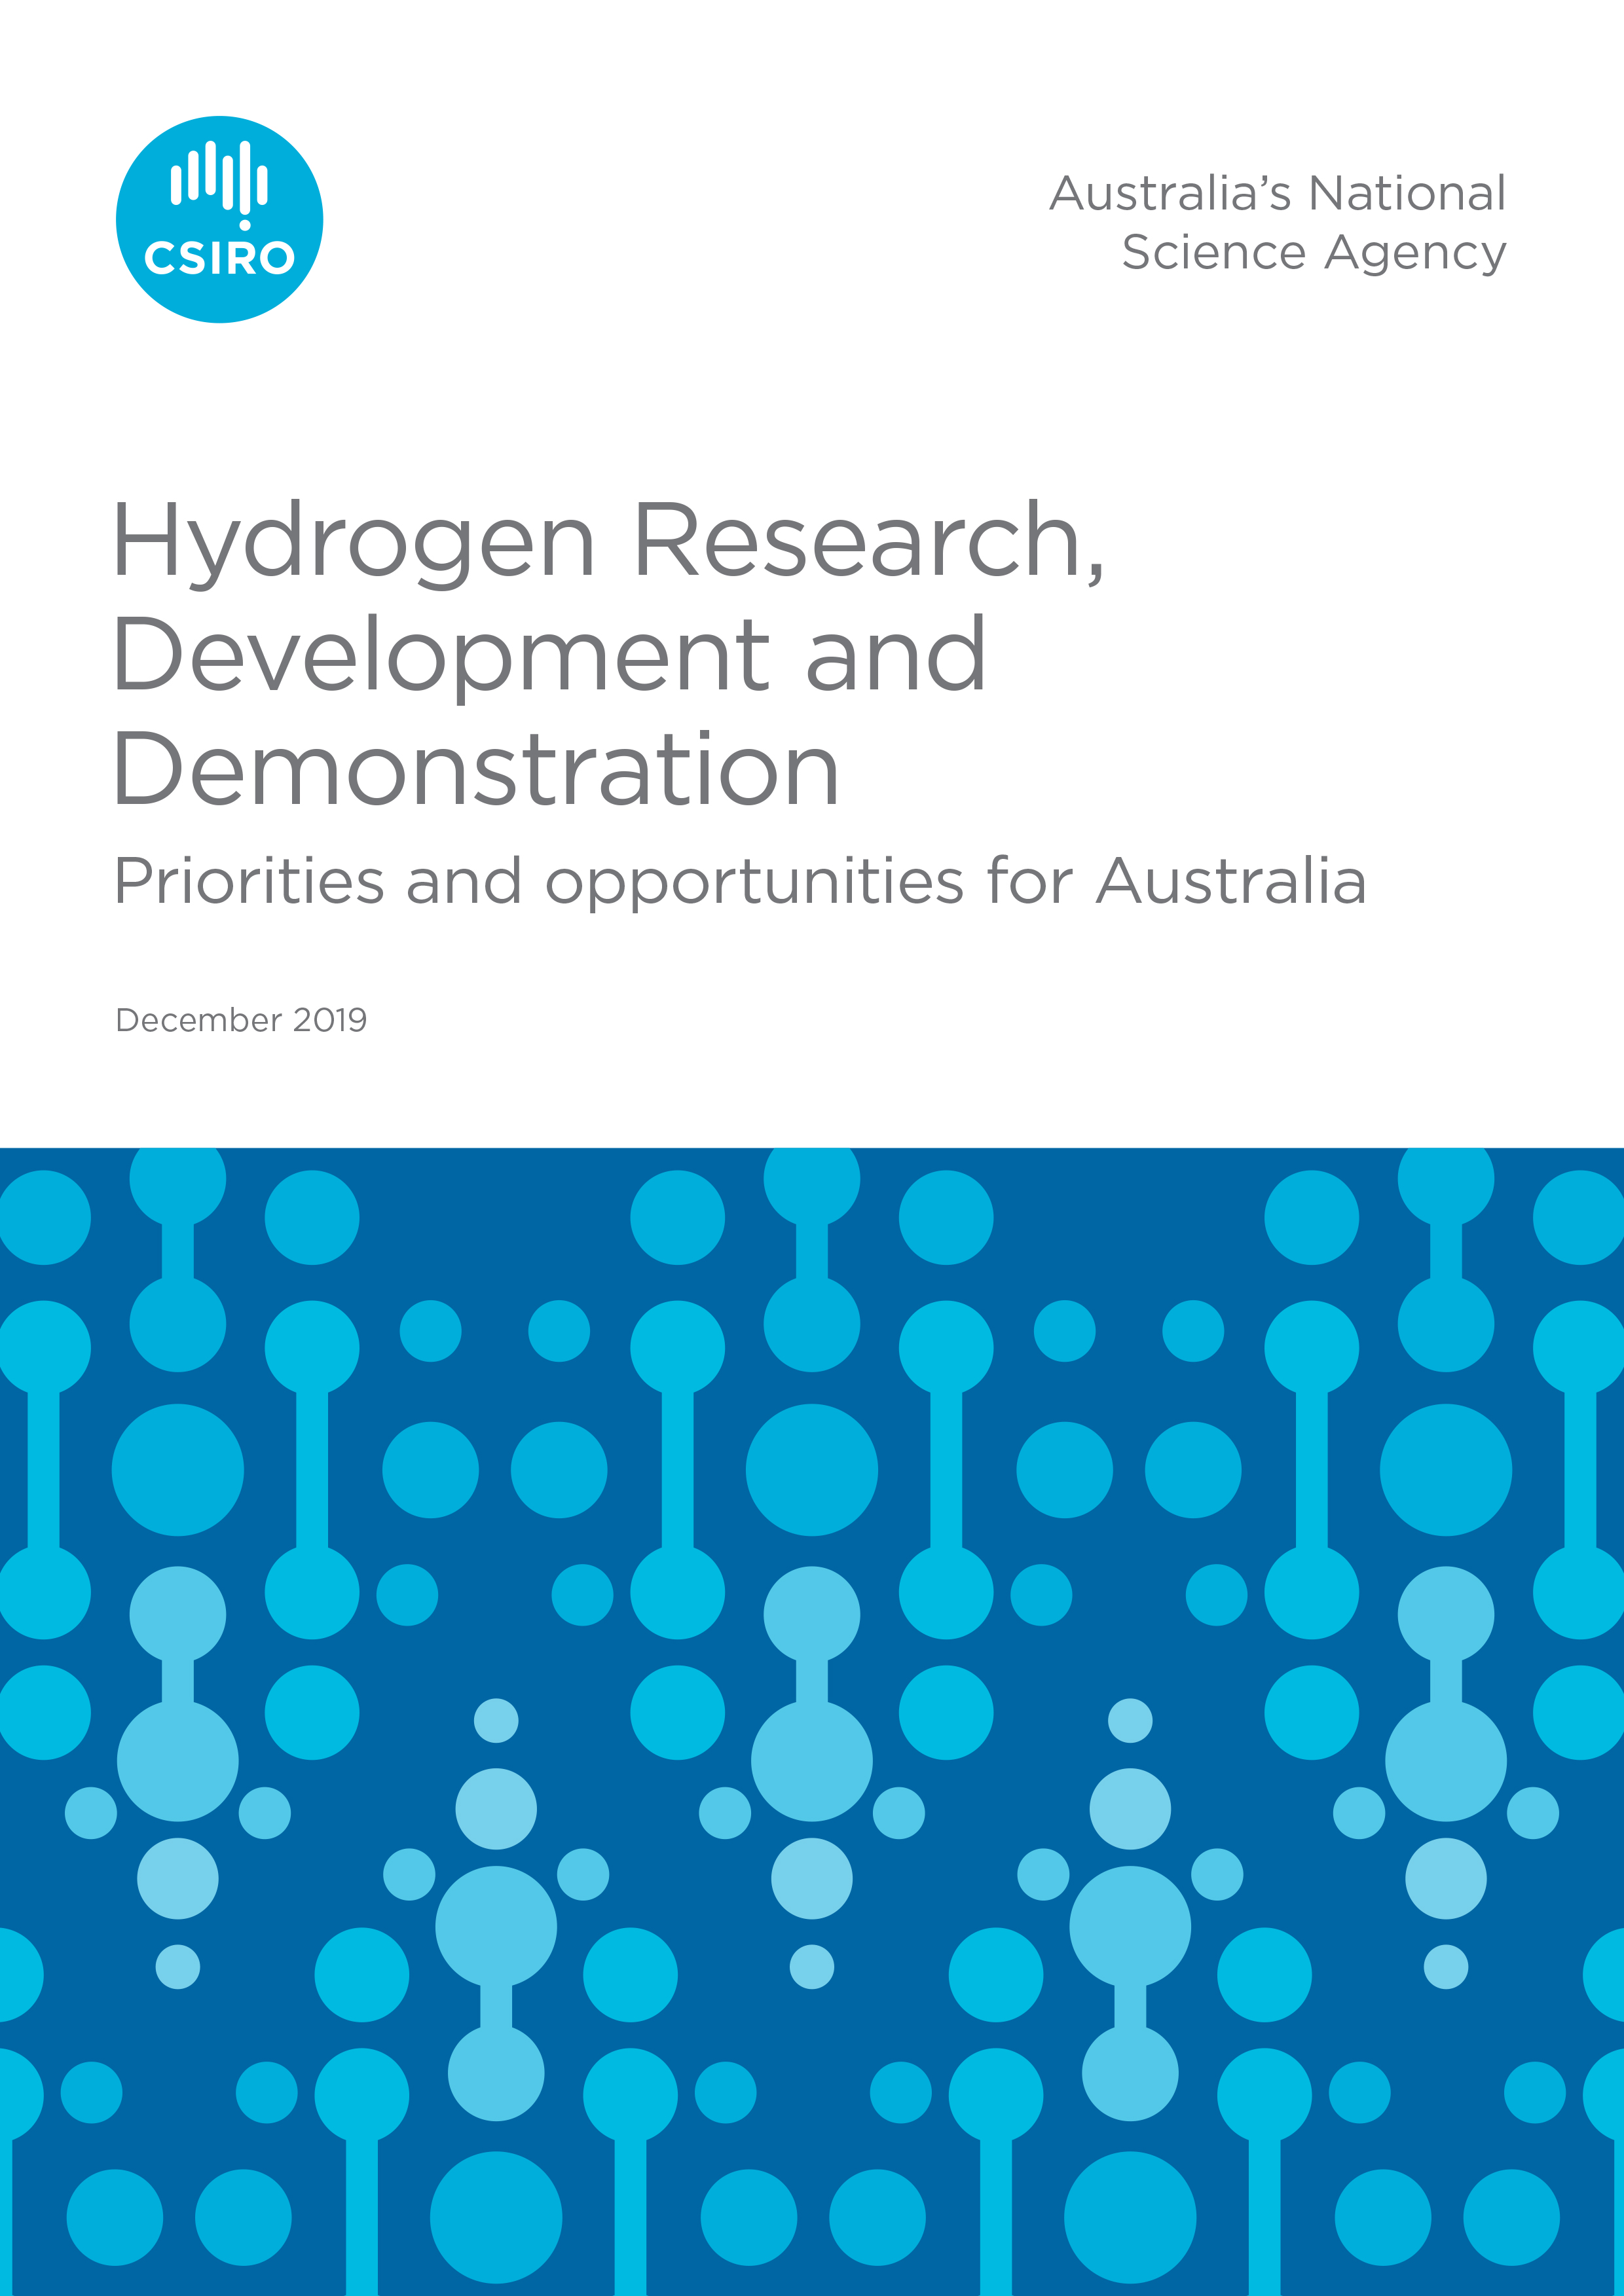 Front cover of the Hydrogen Research, Development and Demonstration report.